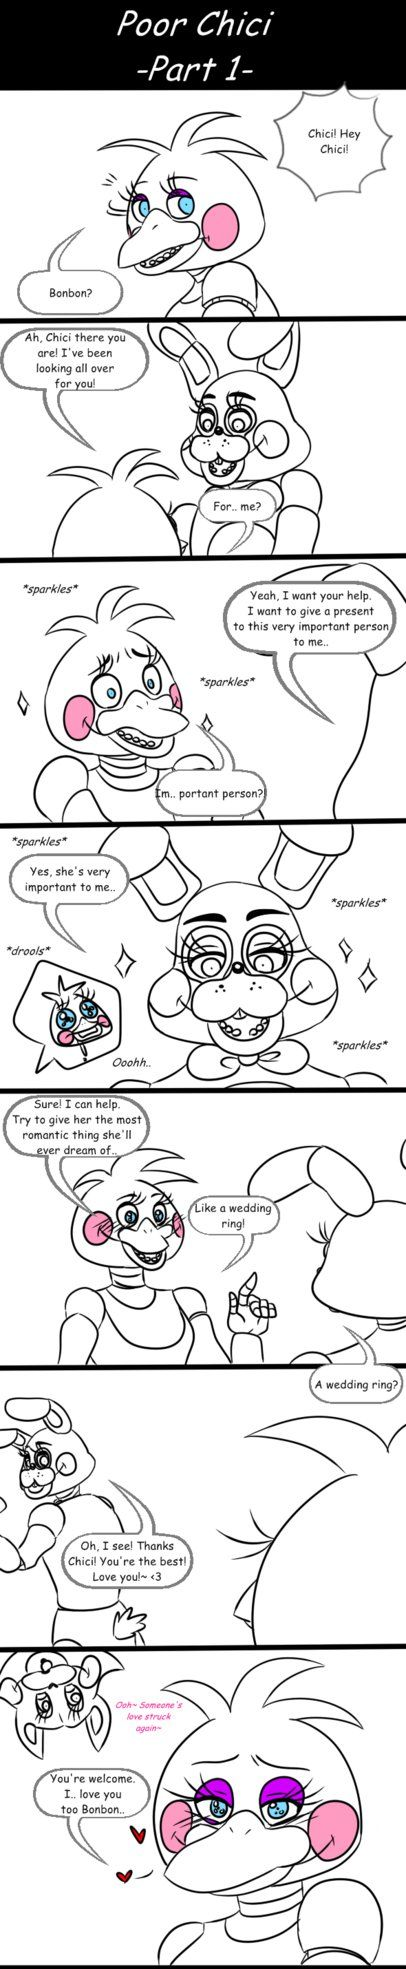 Spookys house of jumpscare e621 - Poor Chici Toy Chica Pt 1 By E C98 On Deviantart